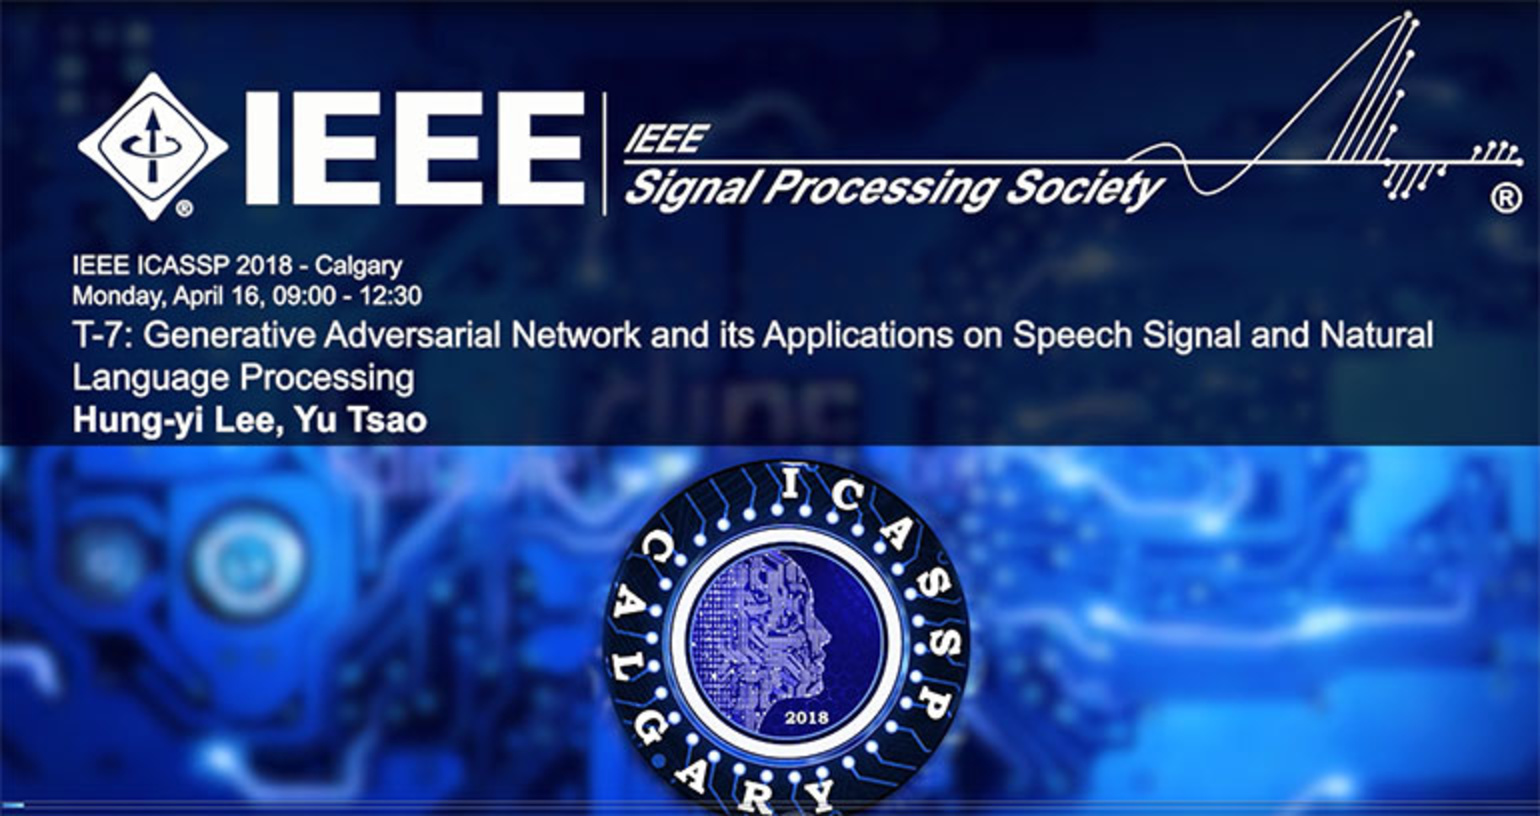 Tutorial 7 – Generative Adversarial Network and its Applications on Speech Signal and Natural Language Processing